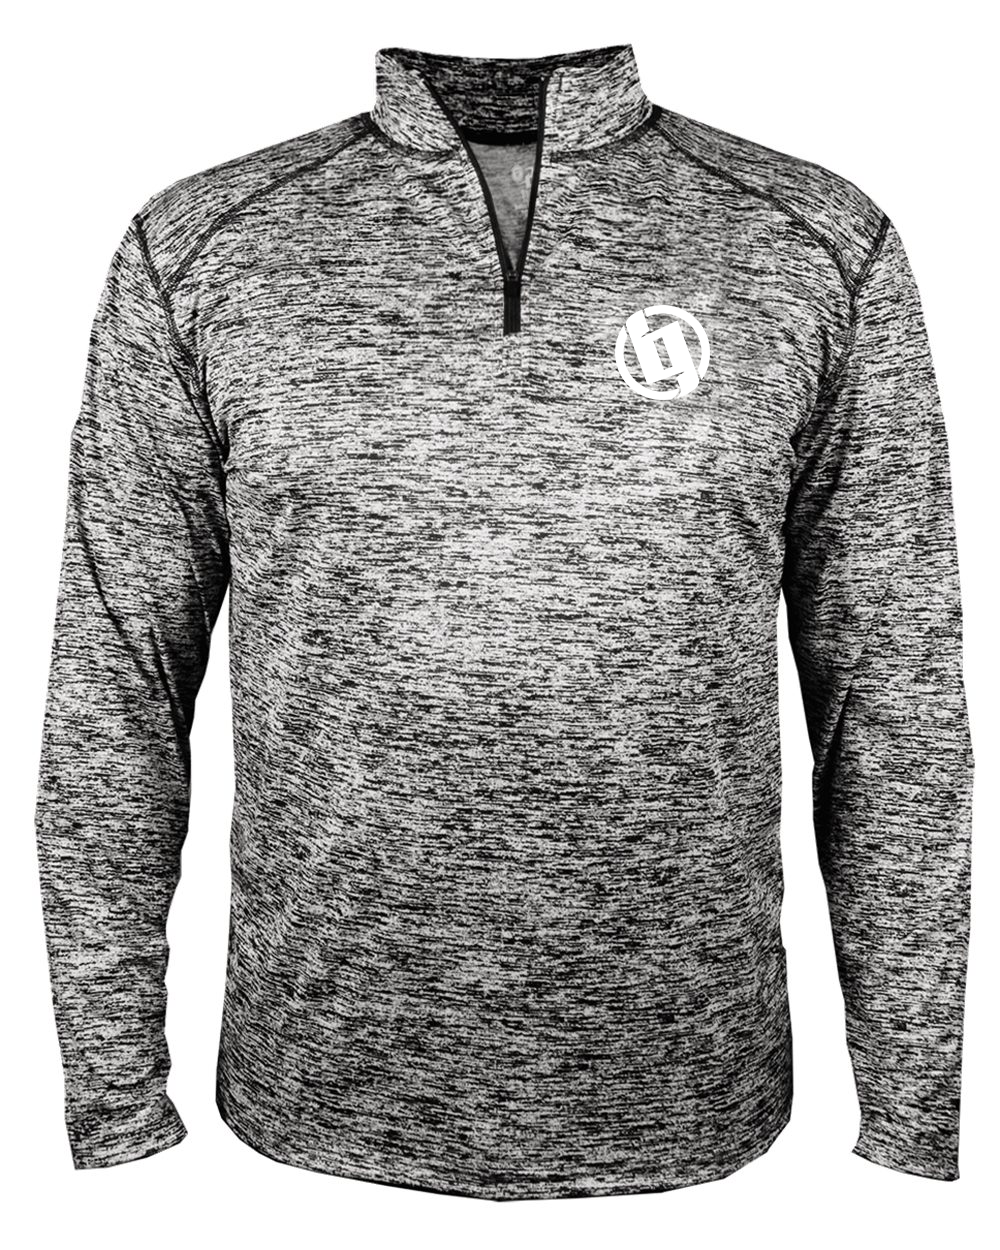 Big Game Men's Heather Dryfit 1/4 Zip Pullover (S-3X)